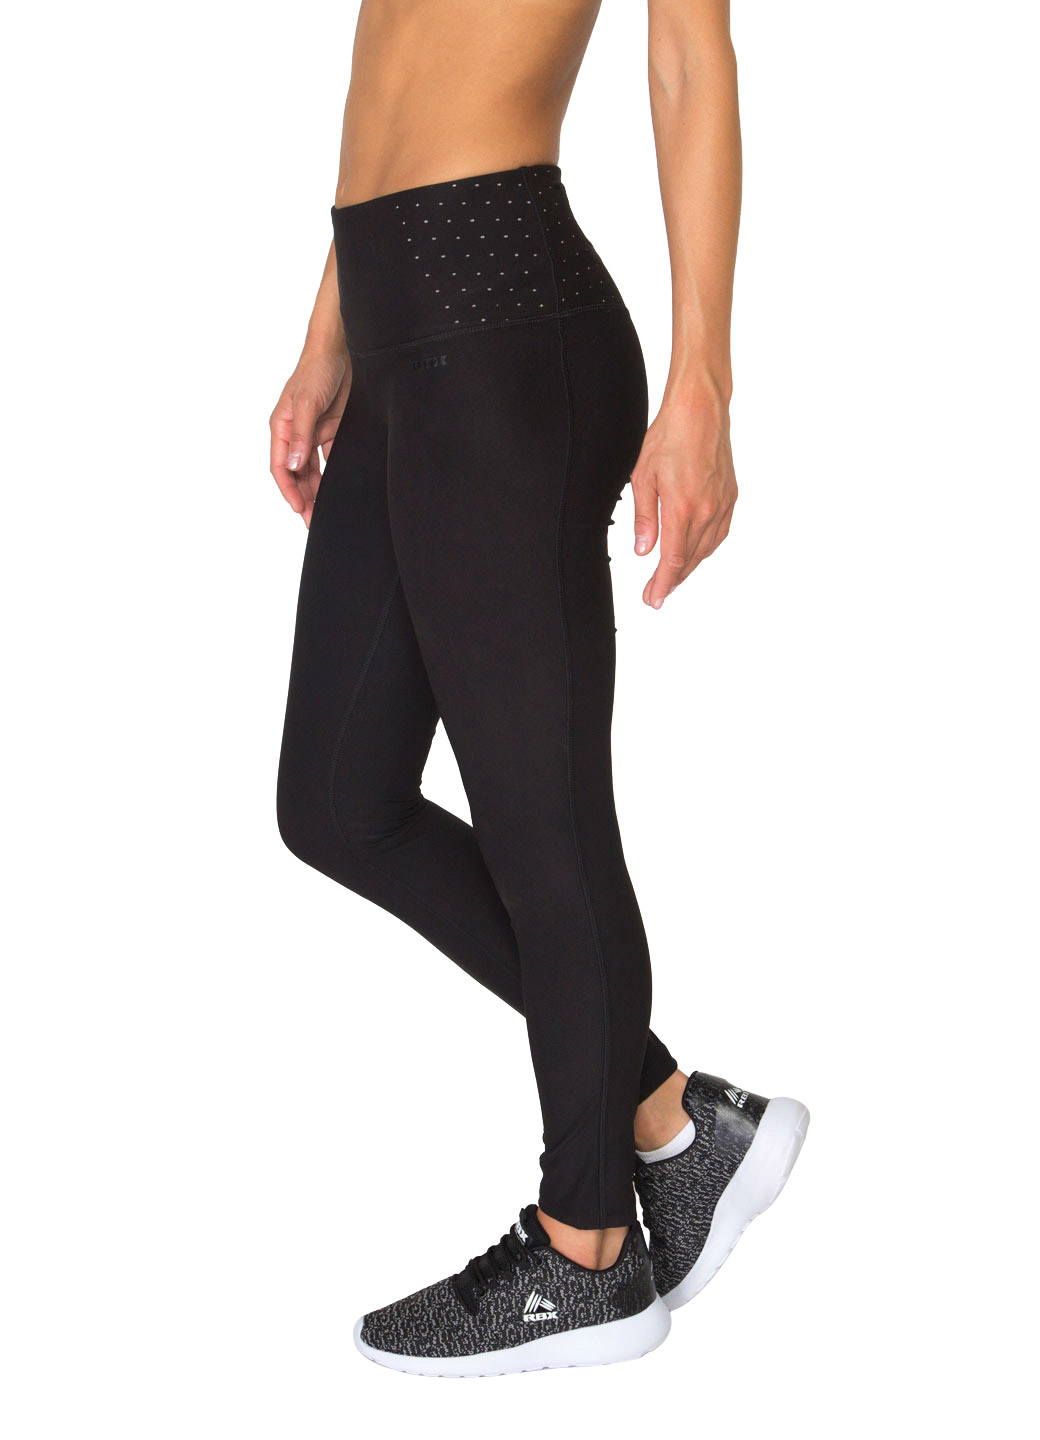 RBX Active Women's Body Contouring High Waisted Athletic Performance Leggings